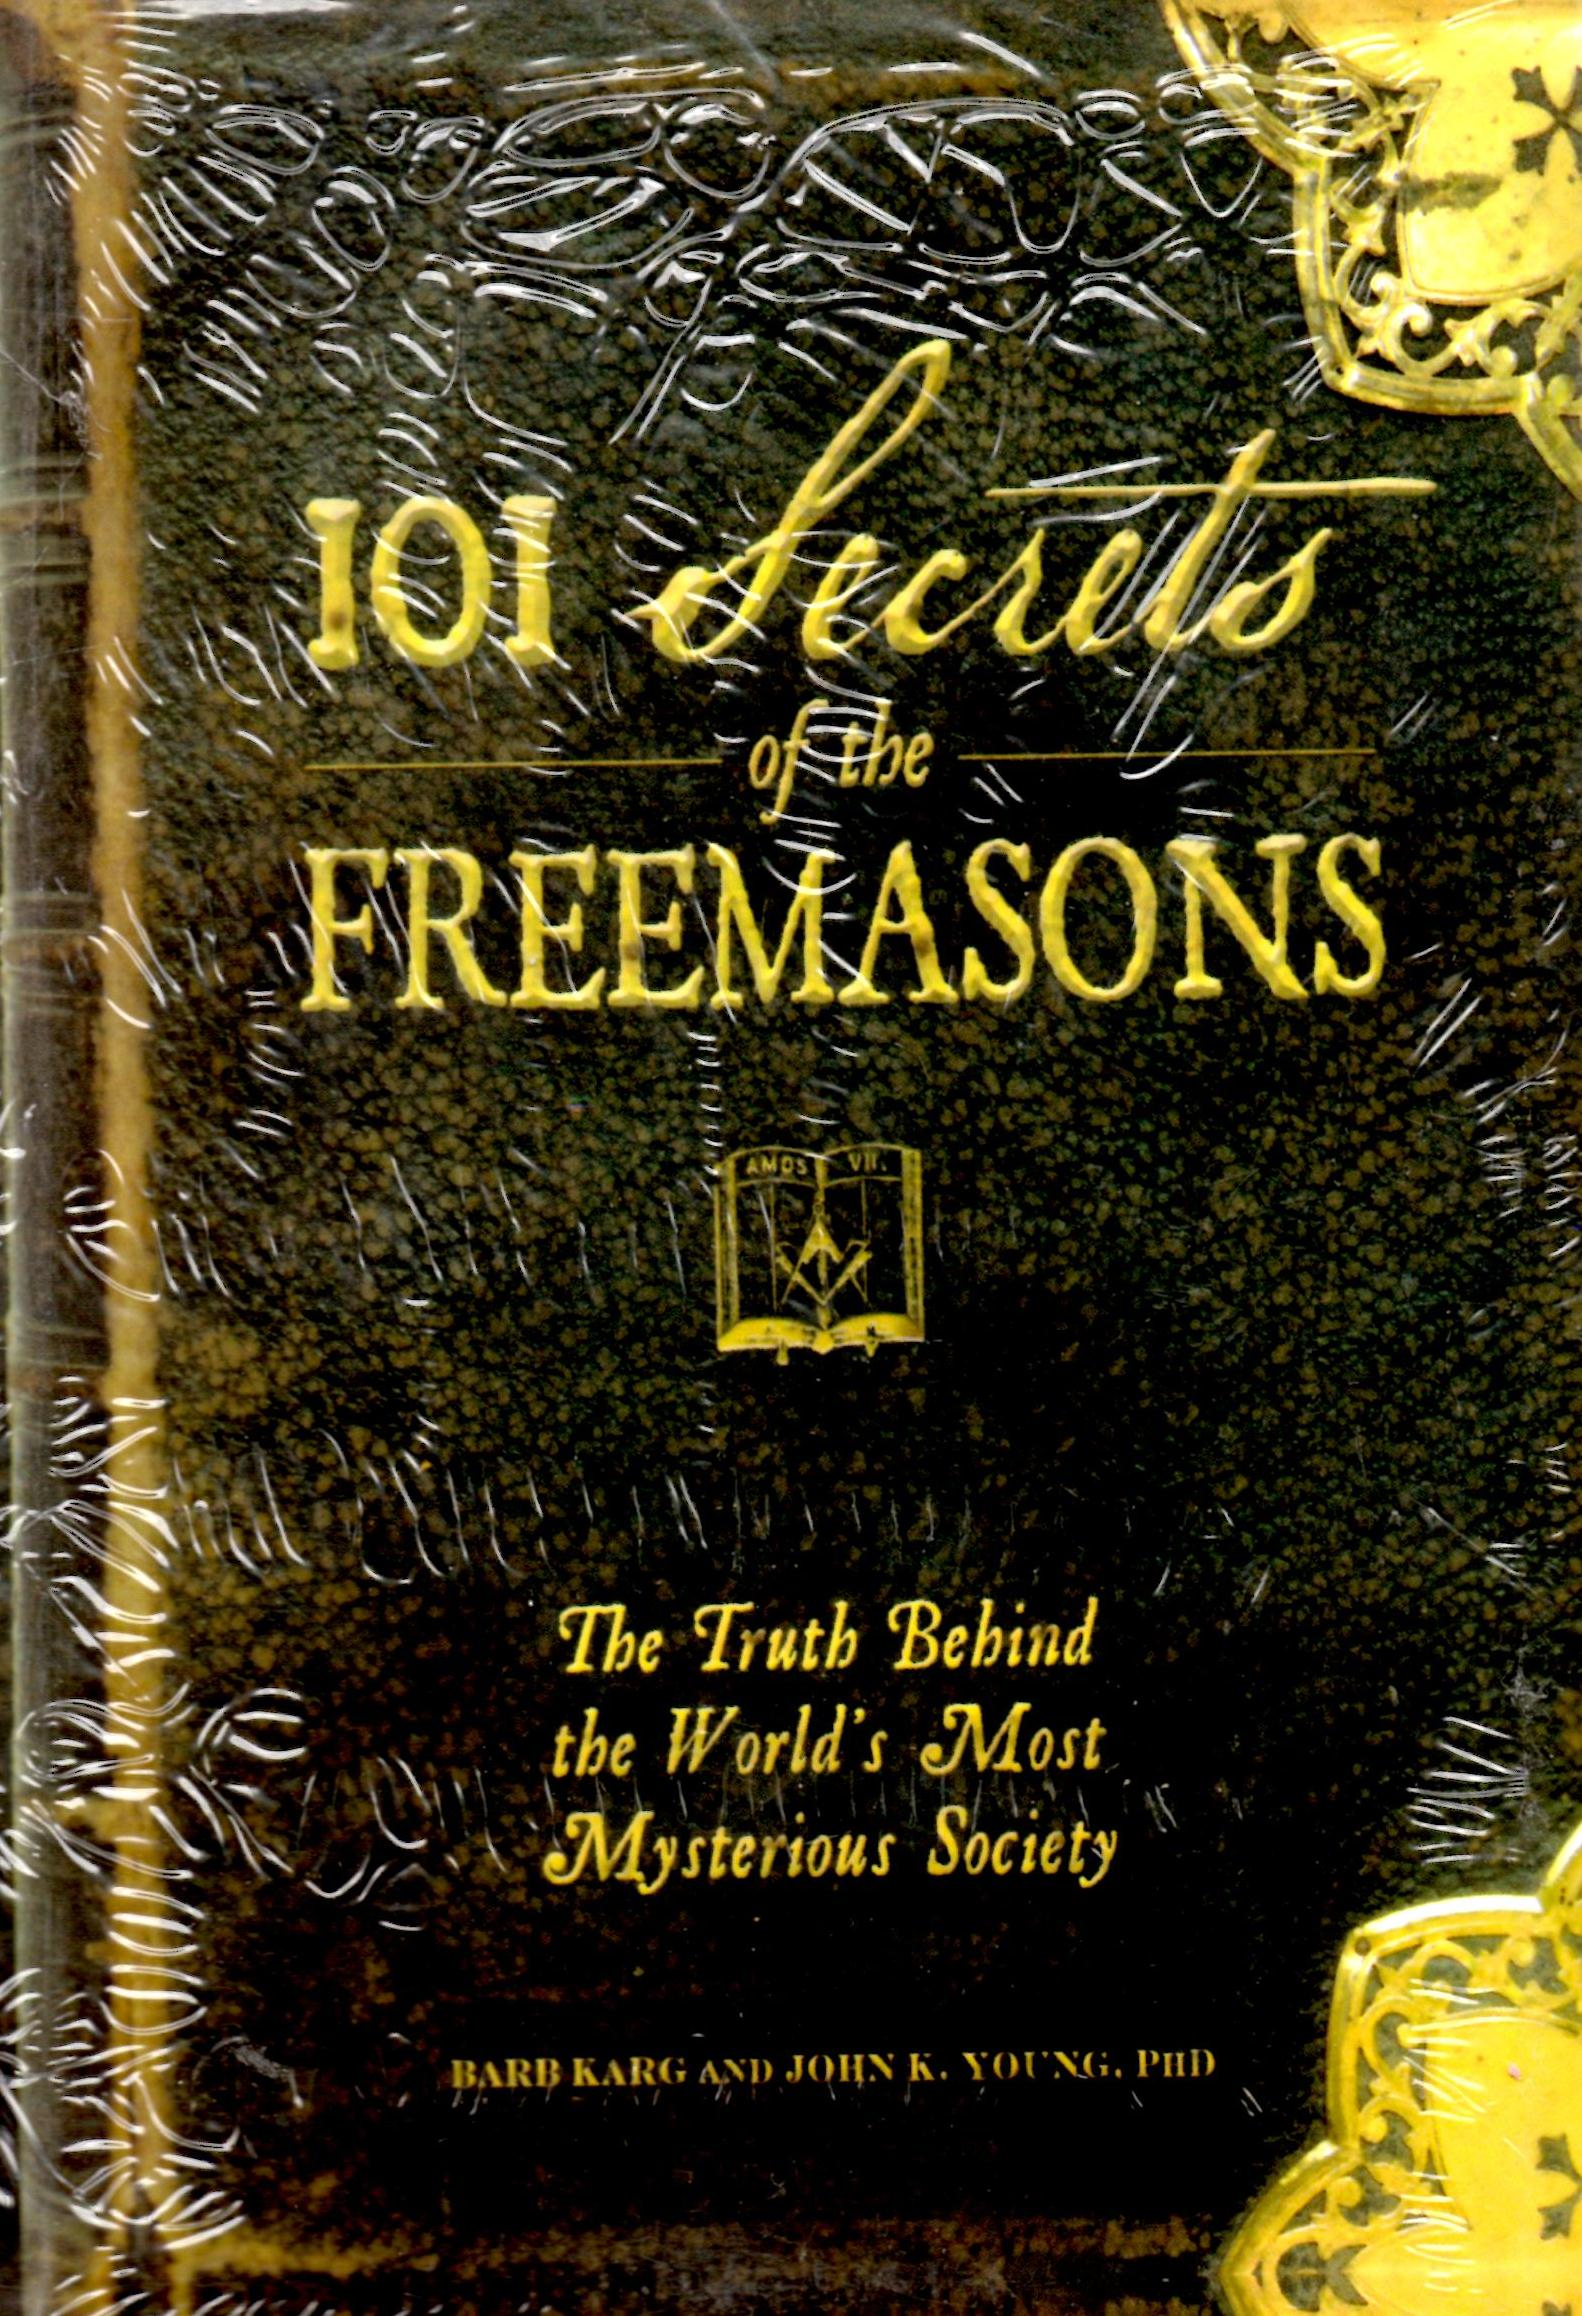 101 Secrets of the Freemasons